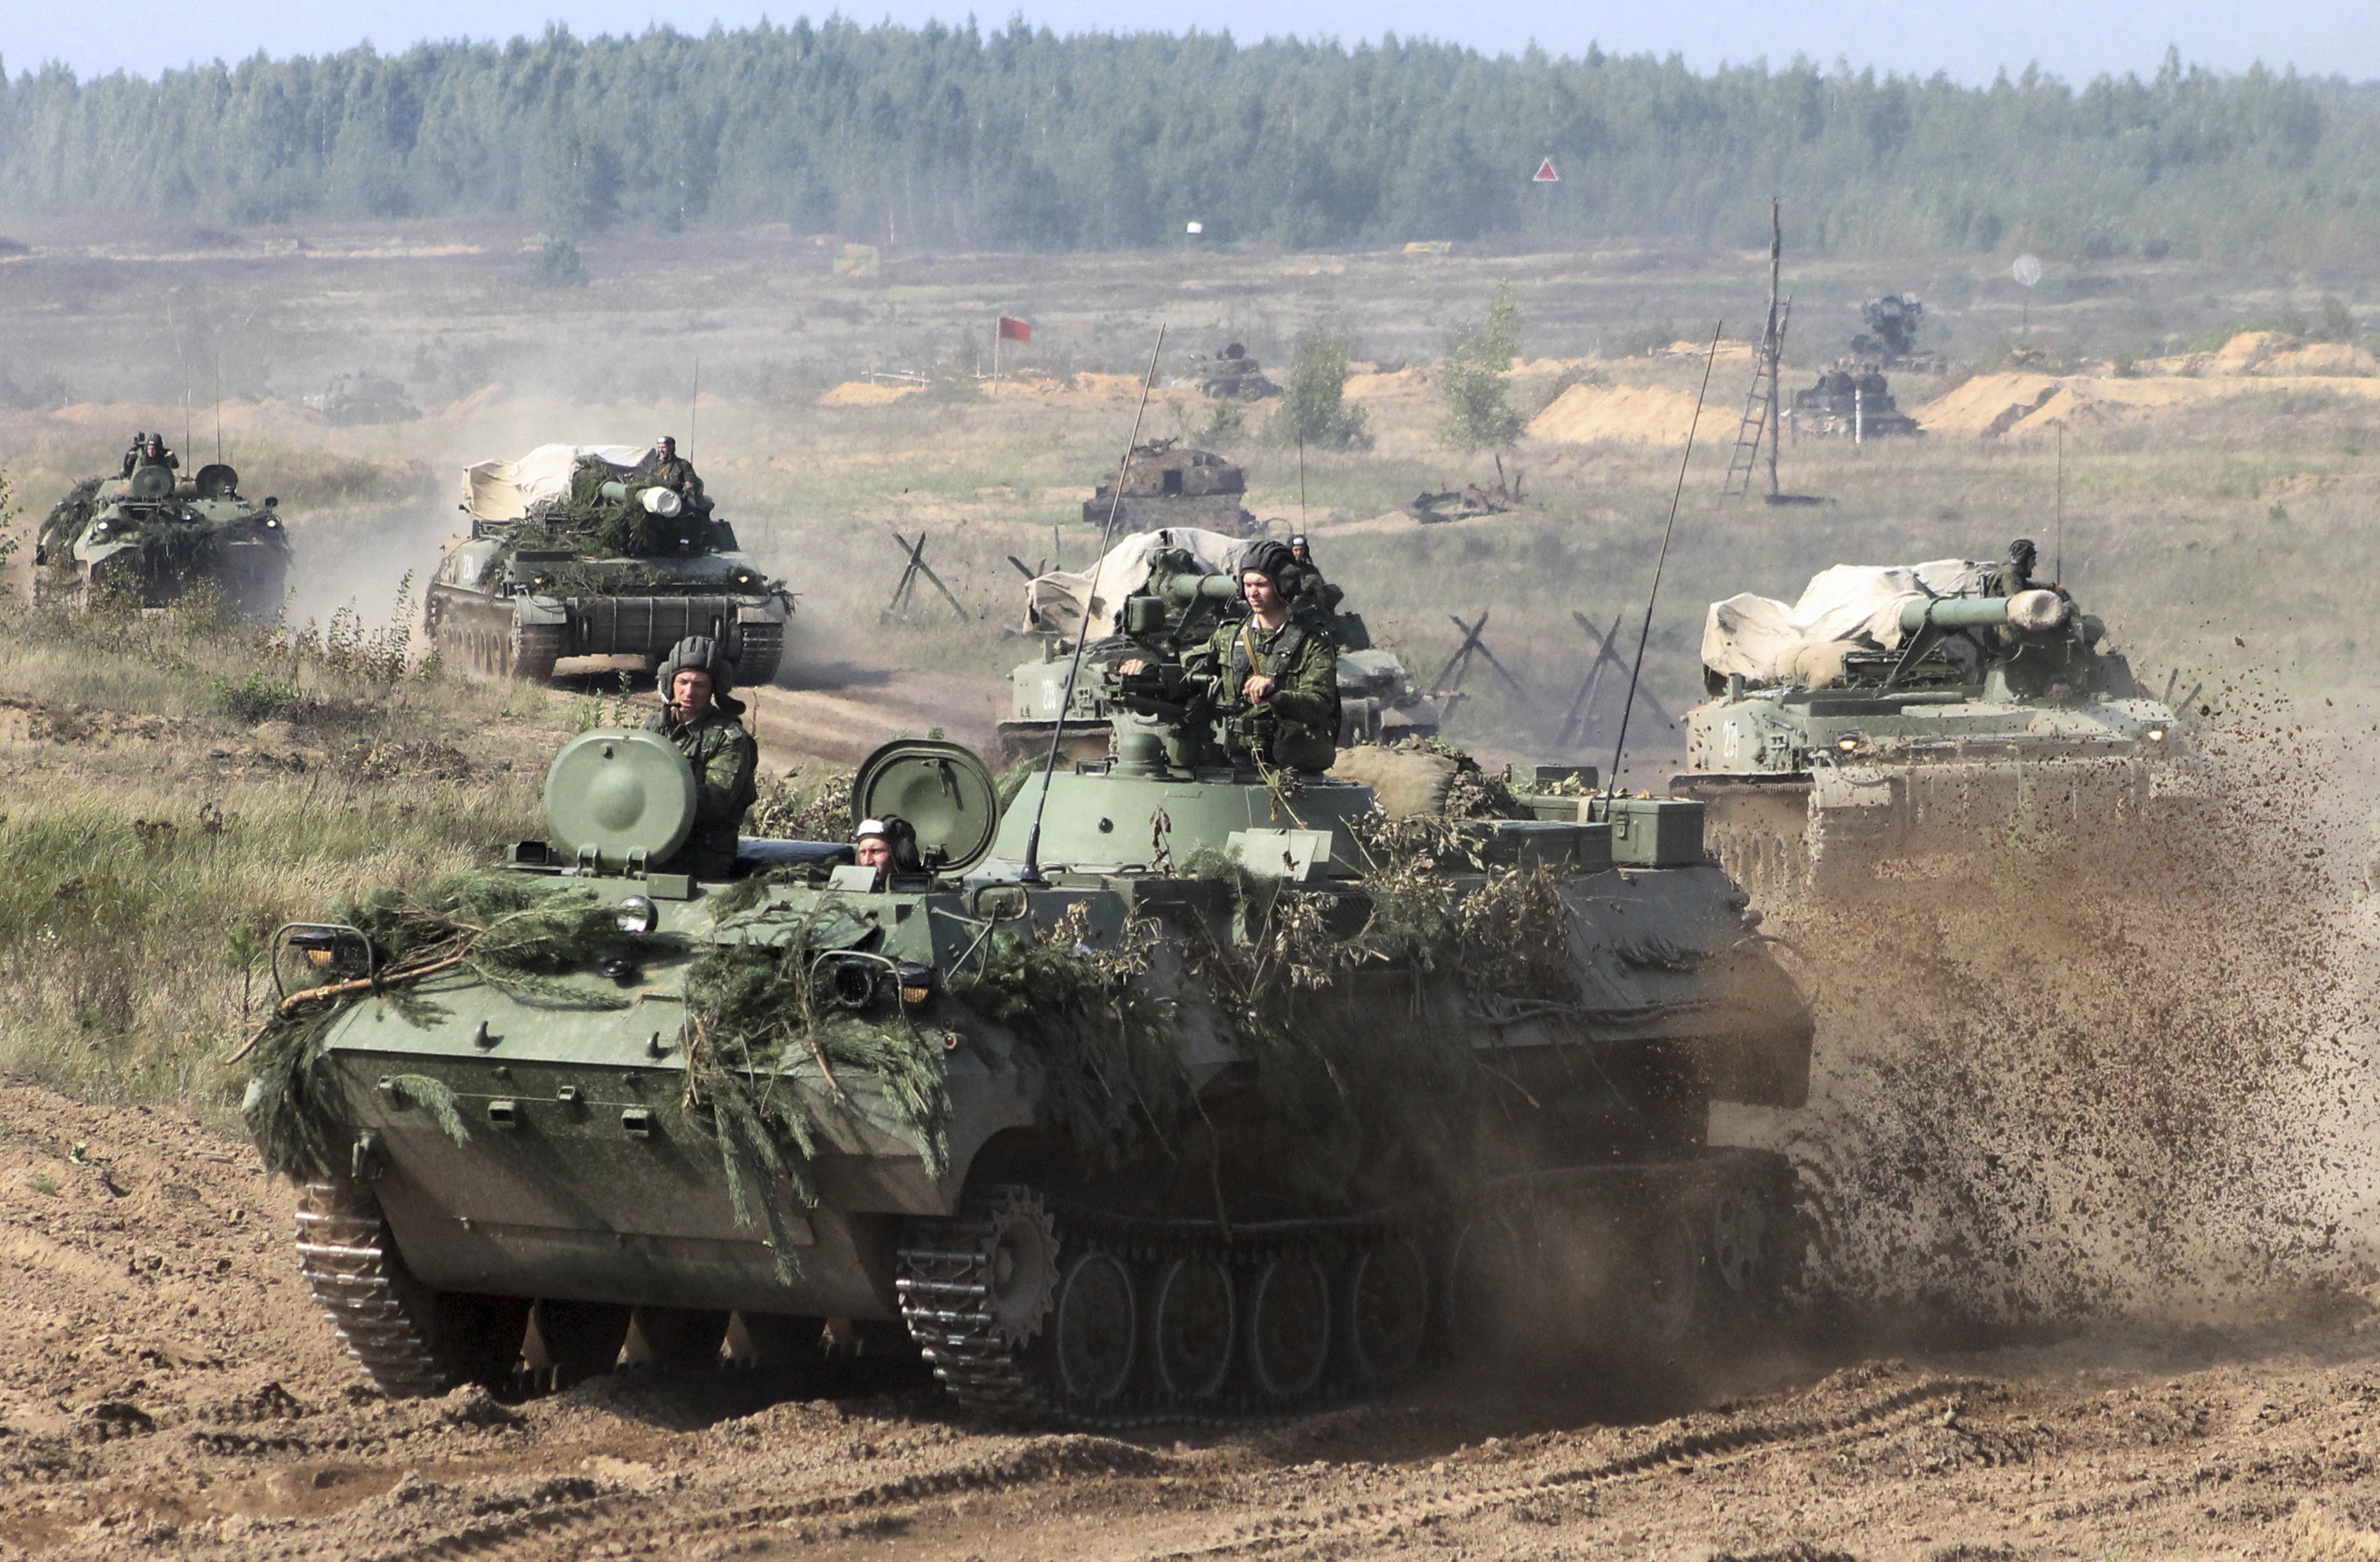 Belarusian army vehicles drive preparing for the Zapad war games. (Vayar Military Agency photo via AP)